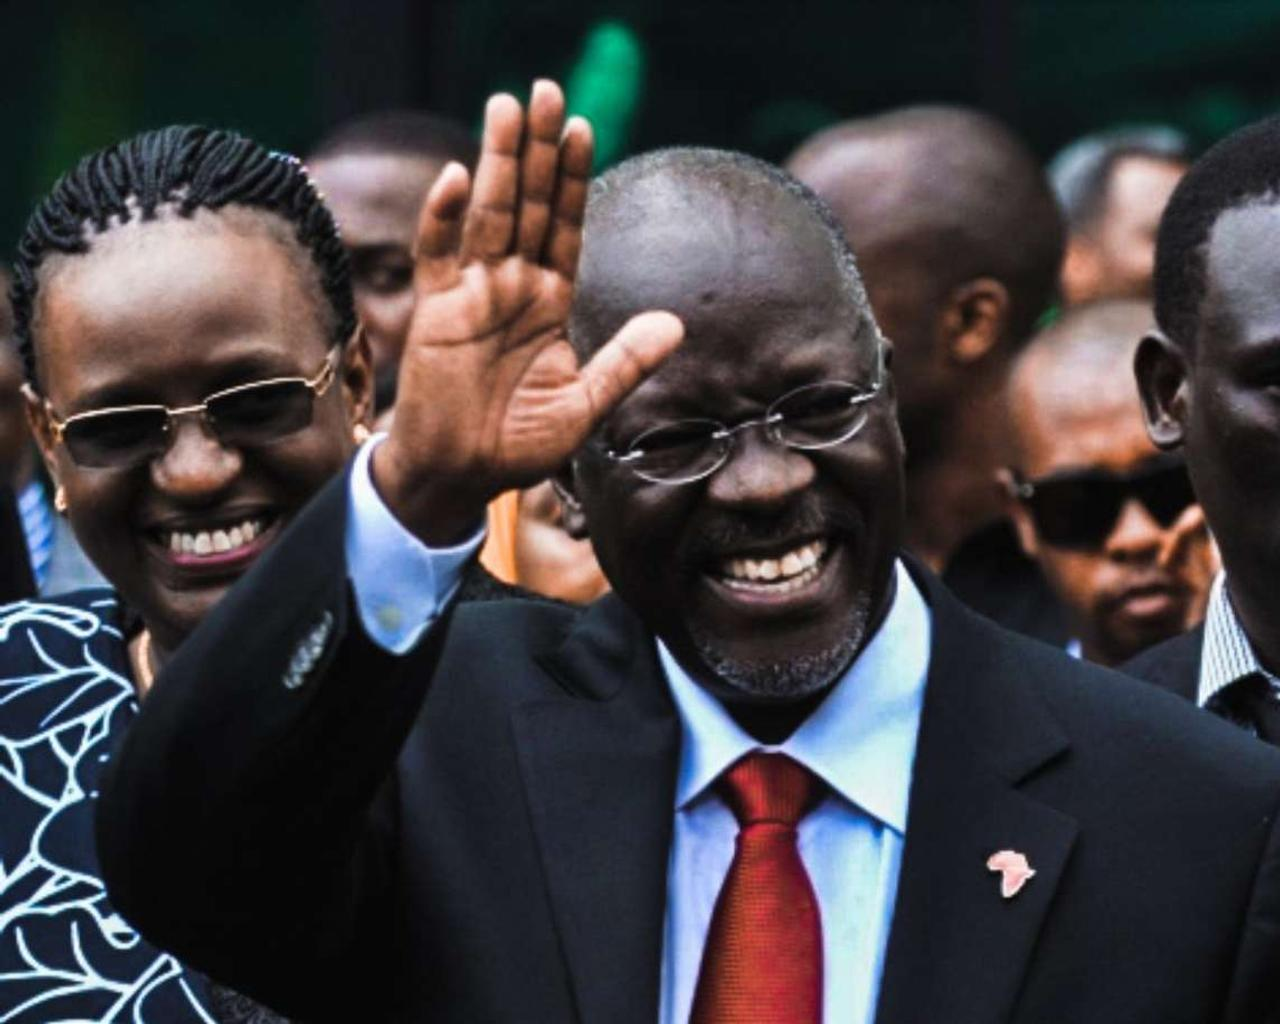 The President of Tanzania died of heart problems, according to rumors; the cause was Covid-1.